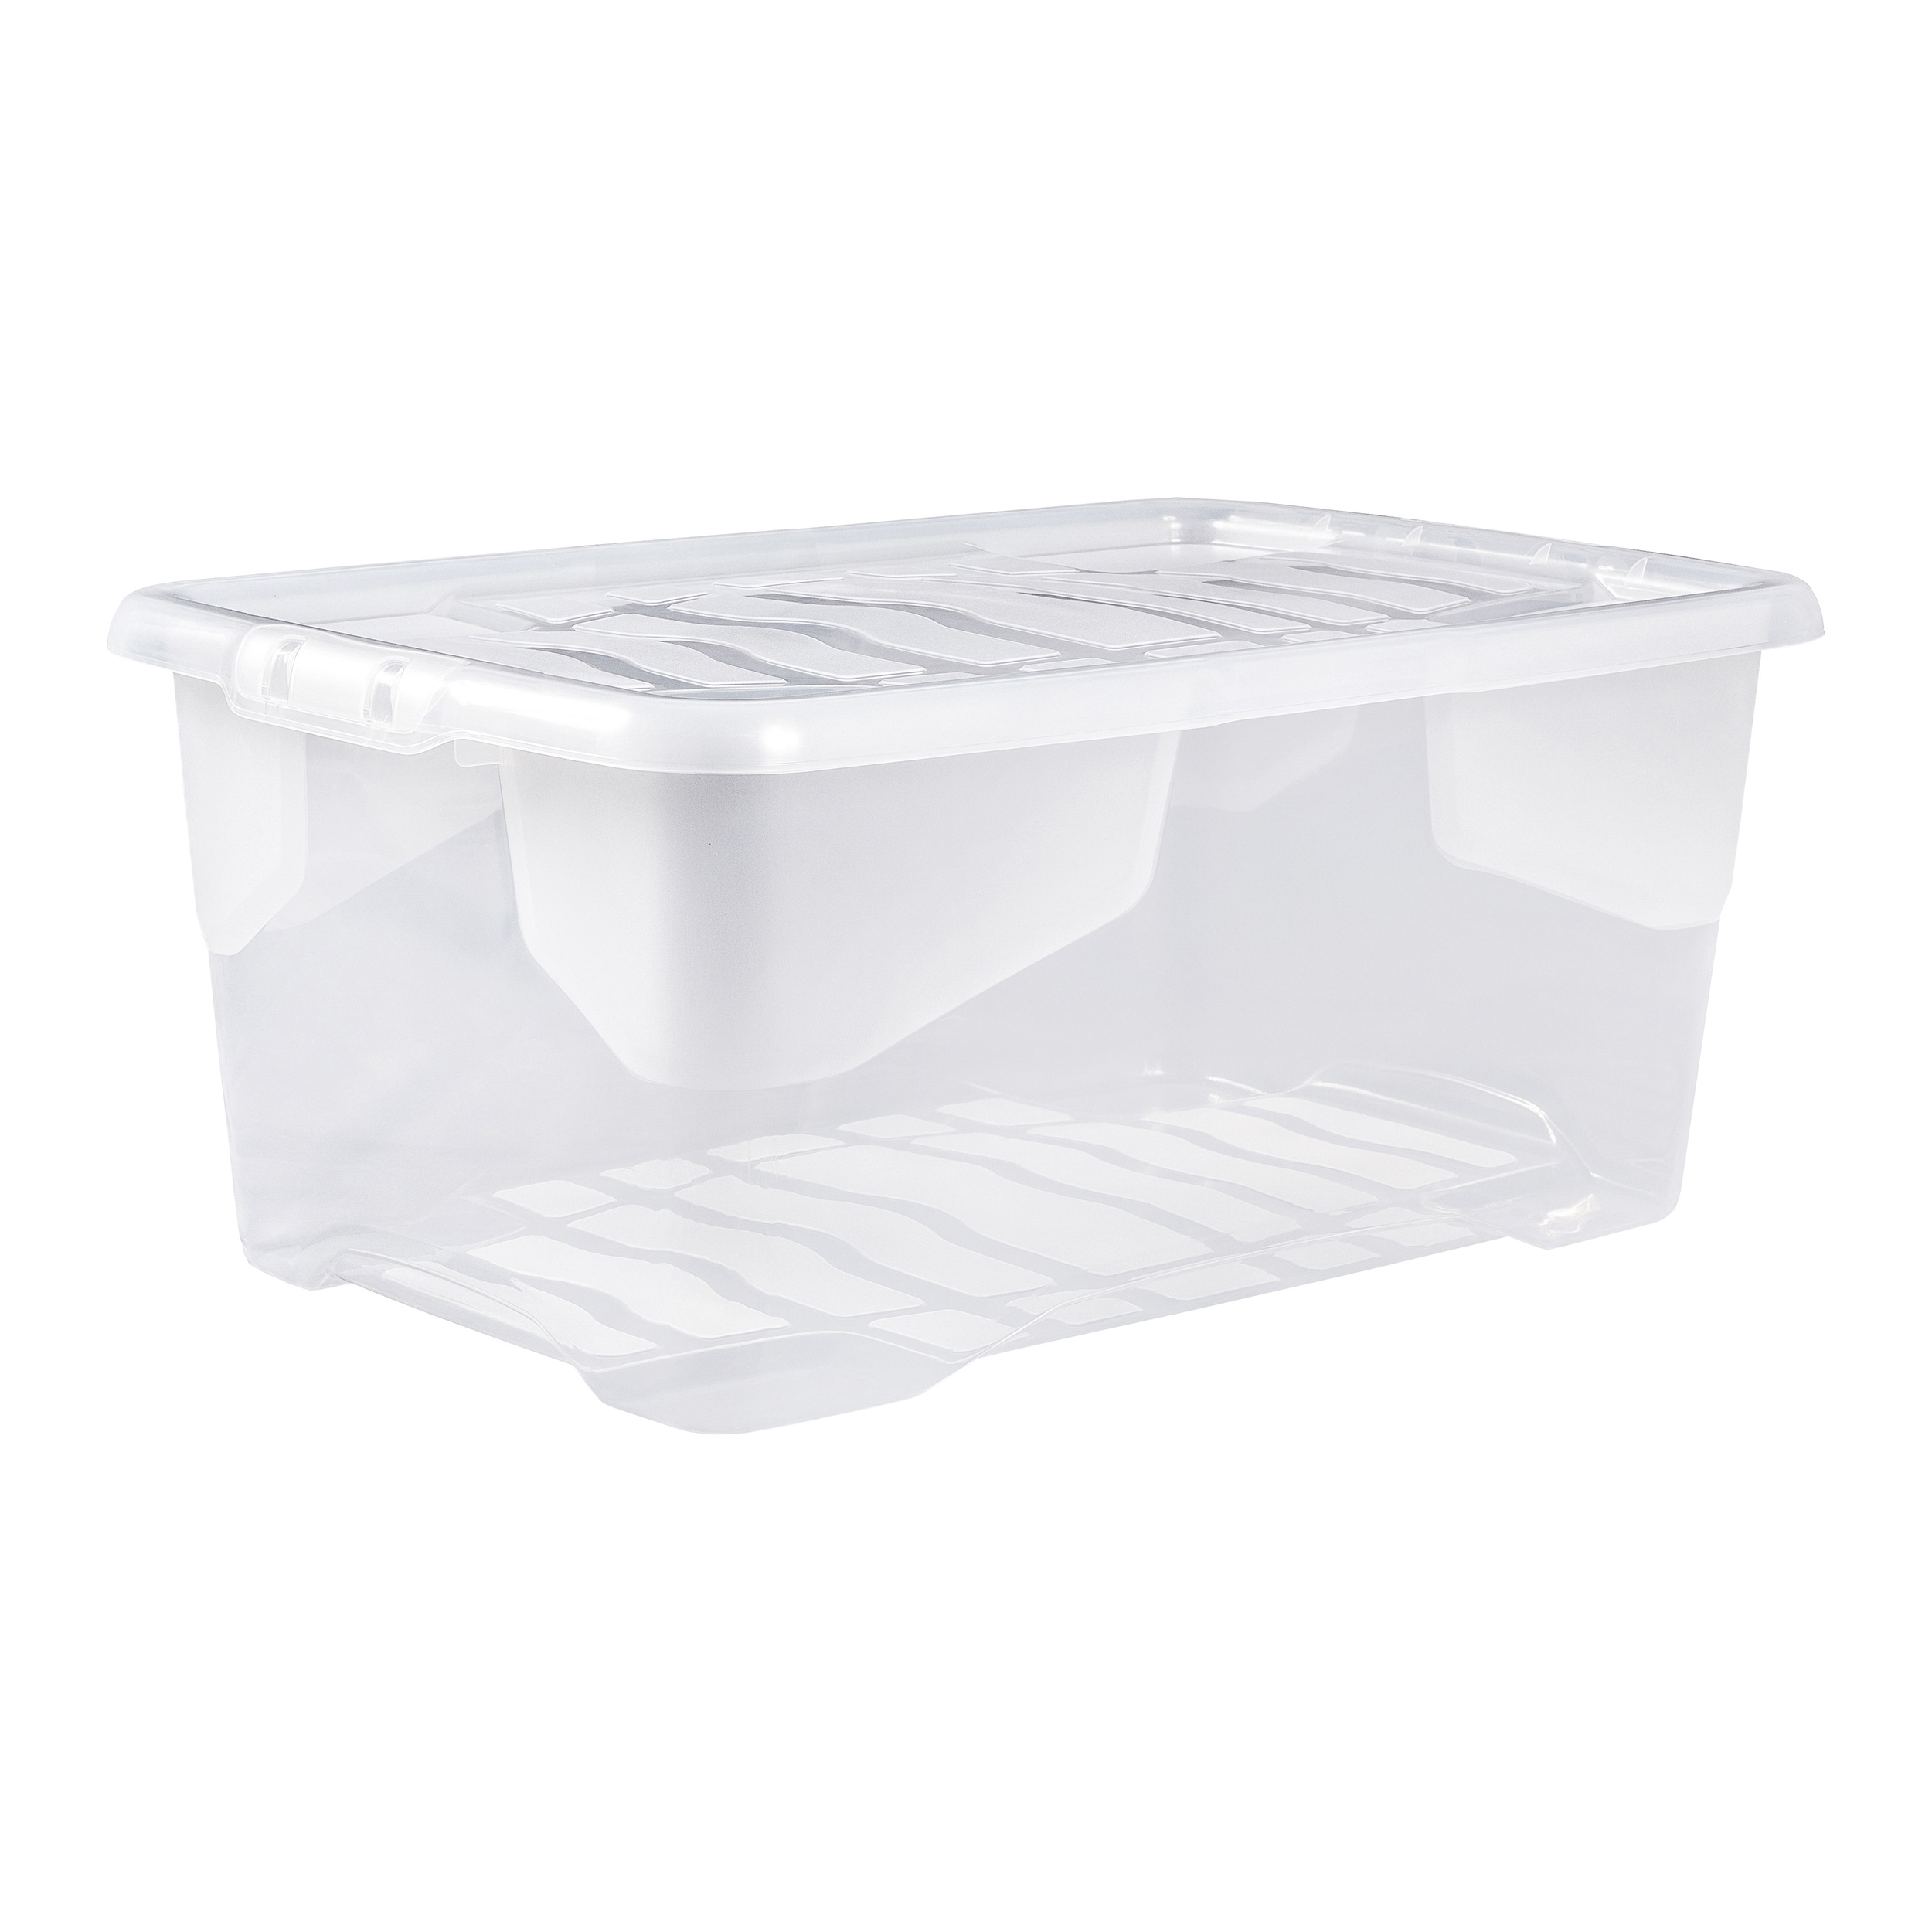 File storage boxes or organizers Strata Curve Box 42 Litre Clear Ref XW202B-CLR